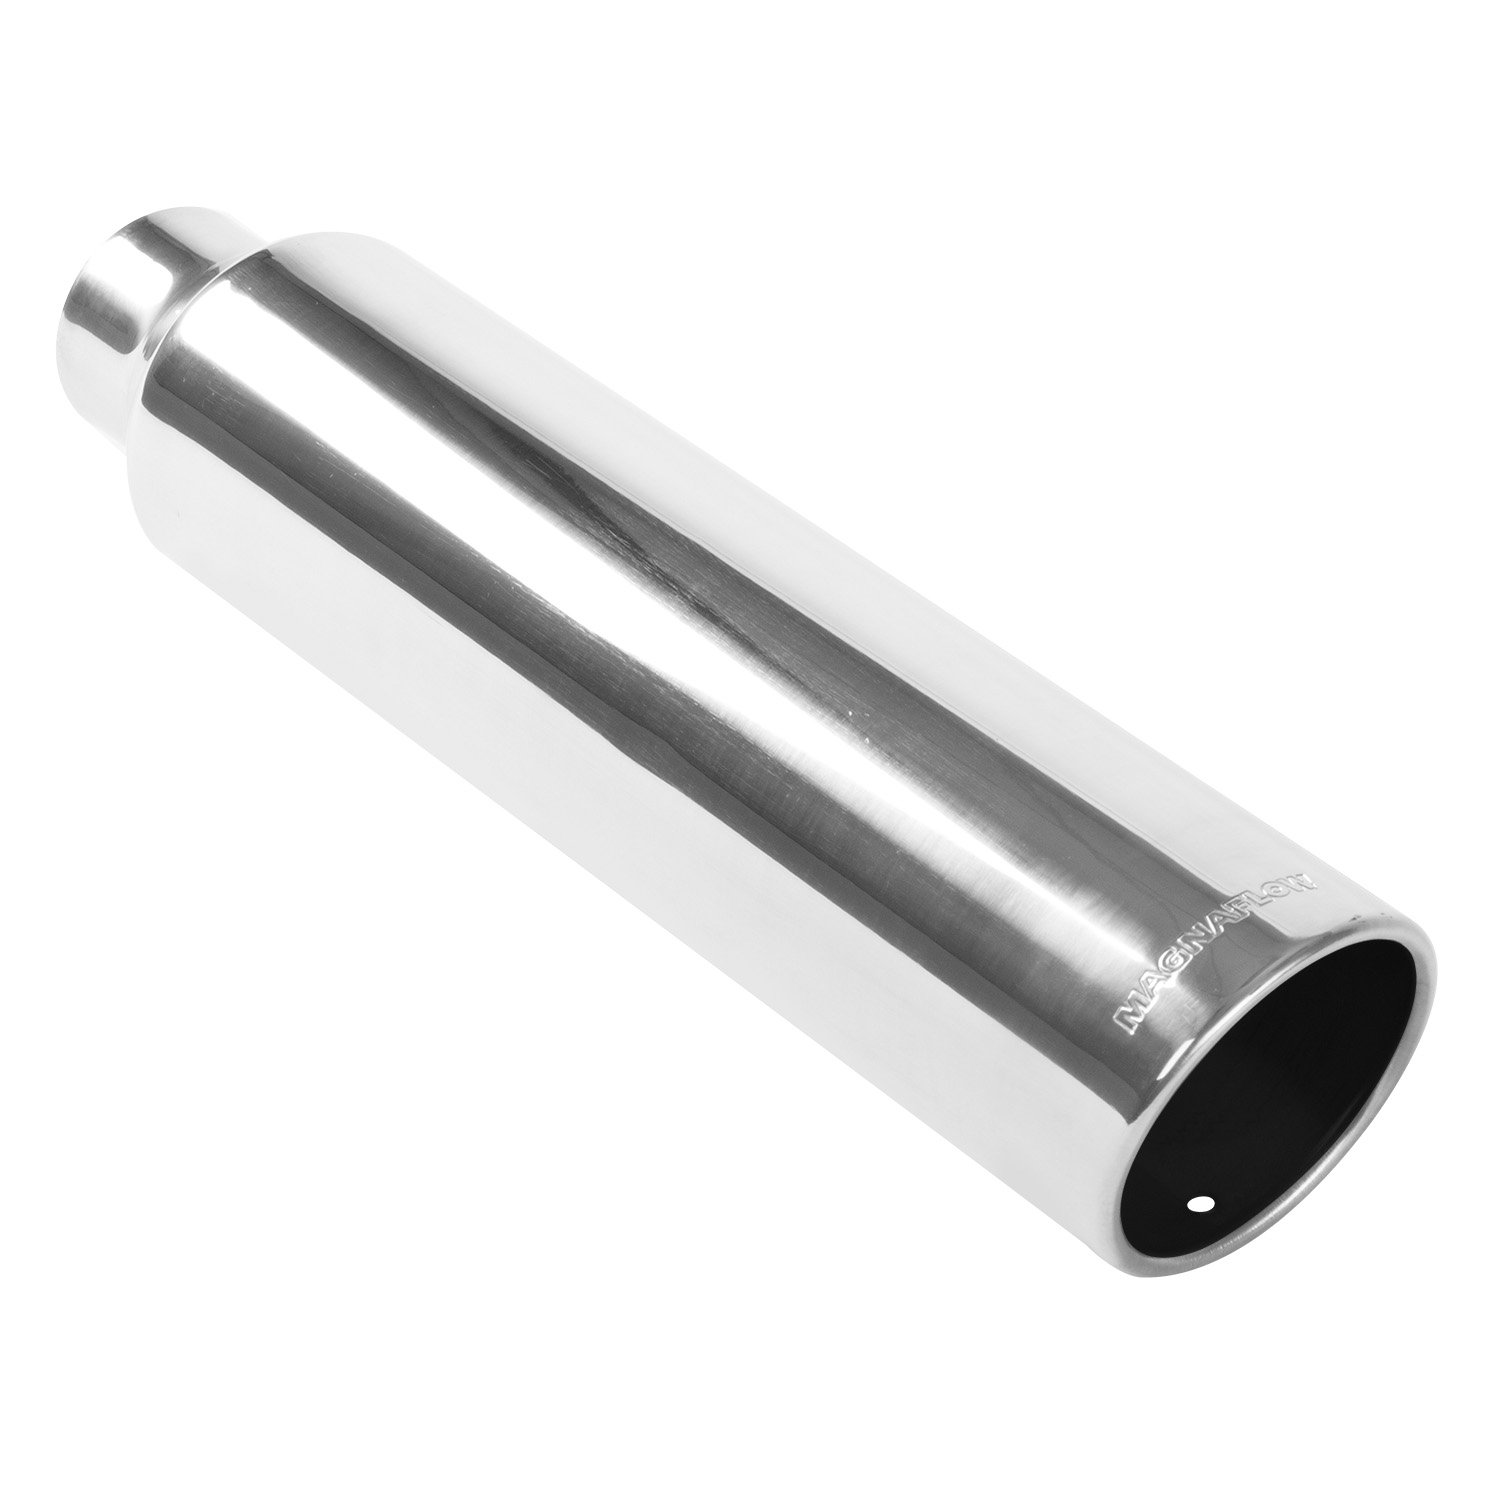 Magnaflow 35111 EXHAUST TAIL PIPE TIP